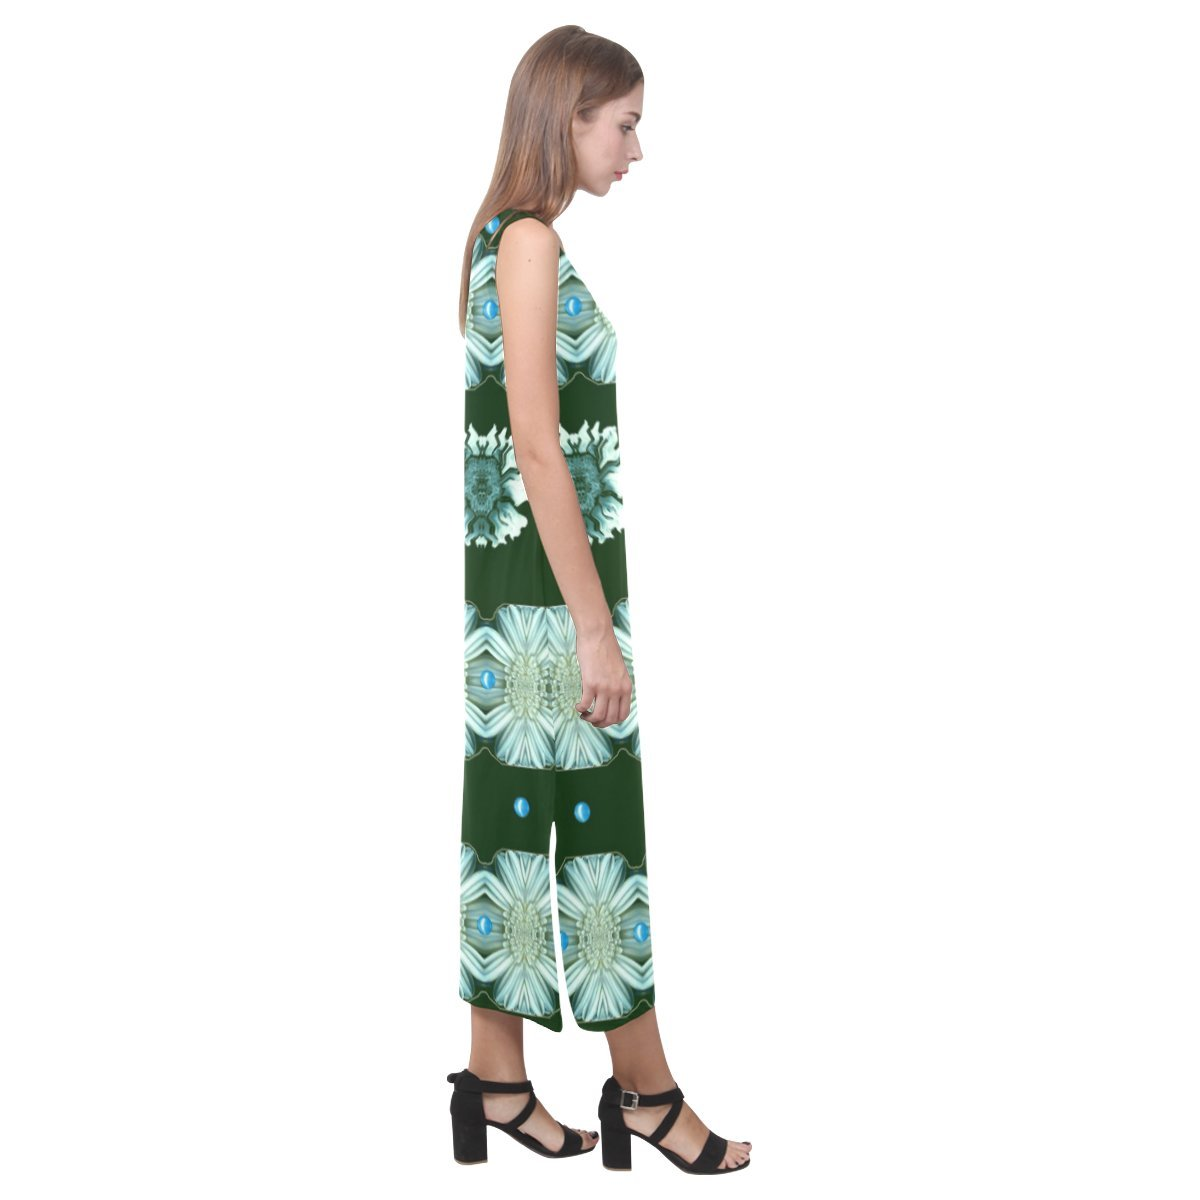 JC-Dress Sleeveless Dress Floral And Flowers In Harmony Party Beach Open Fork Long Dress